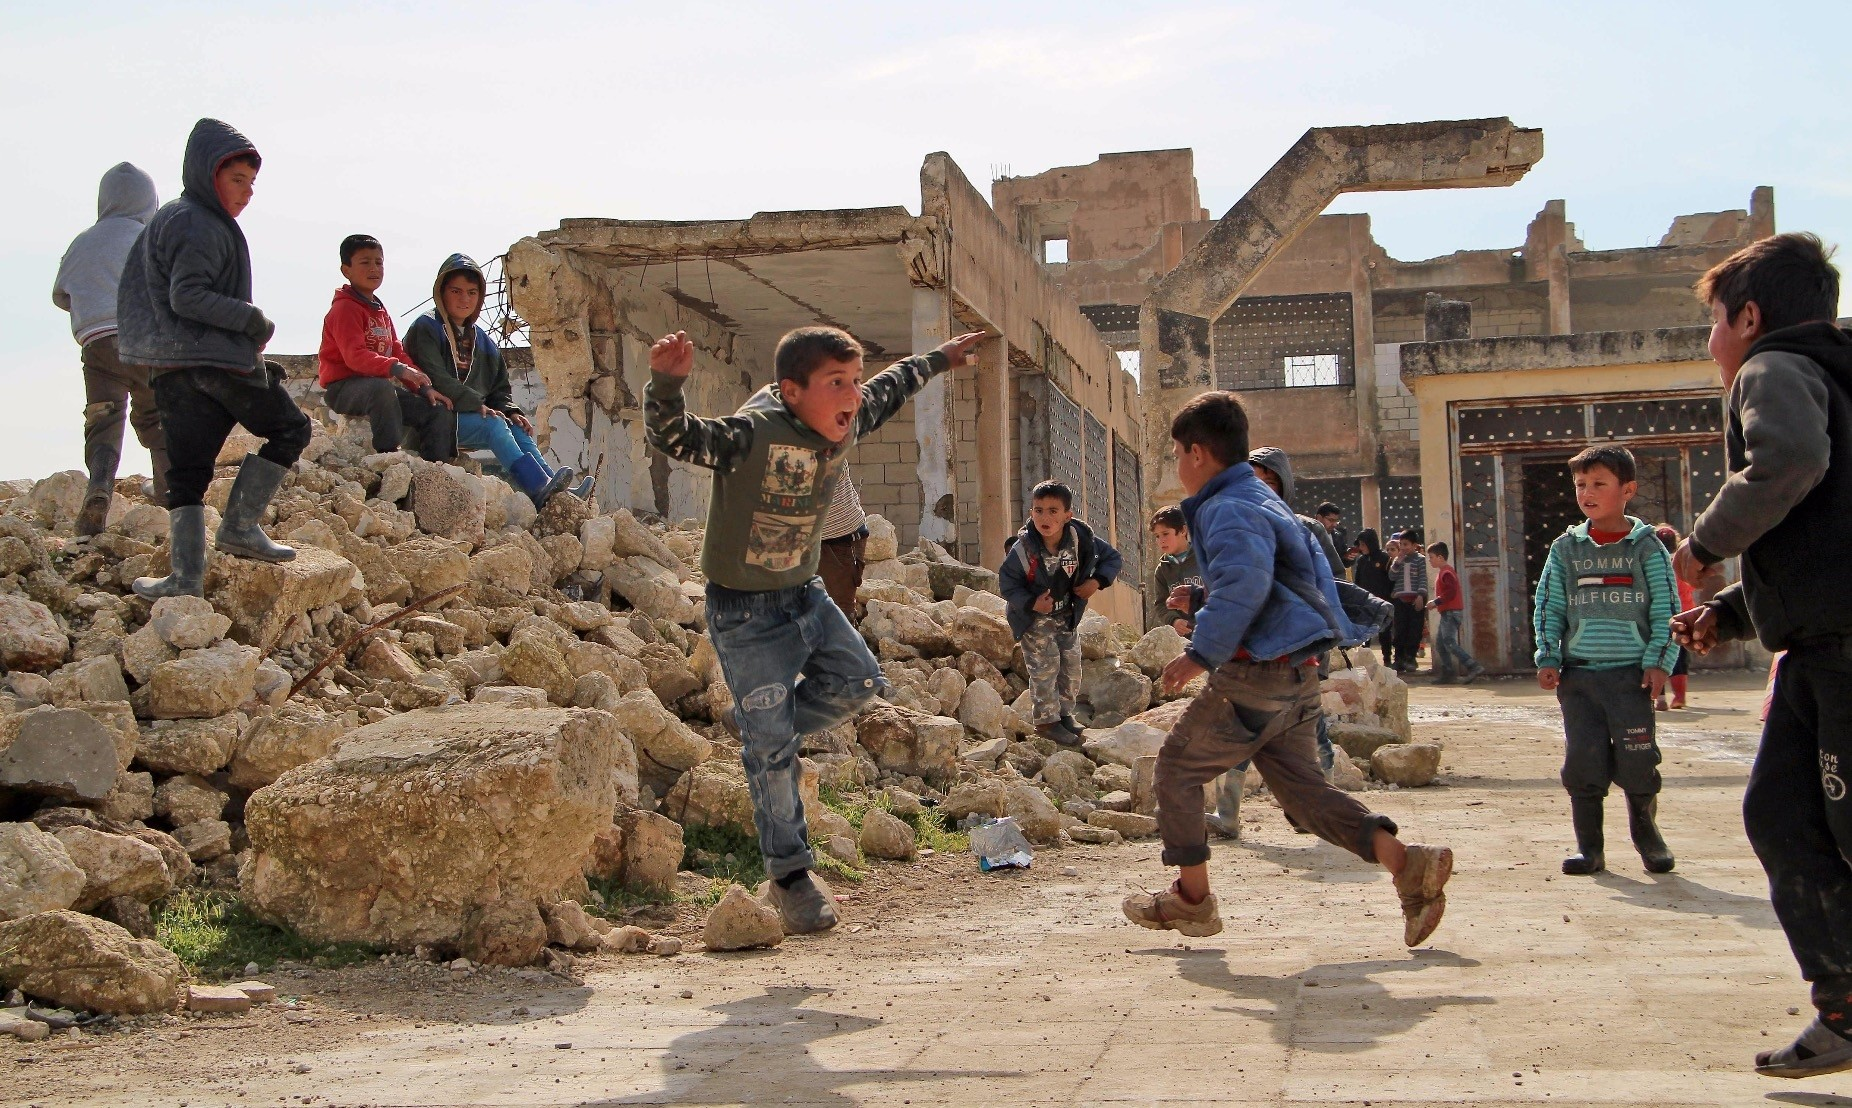 Children play in the yard of a school that was partially destroyed during battles in the village of Kufayr, in Syriau2019s Idlib Governorate, Feb. 4, 2019.